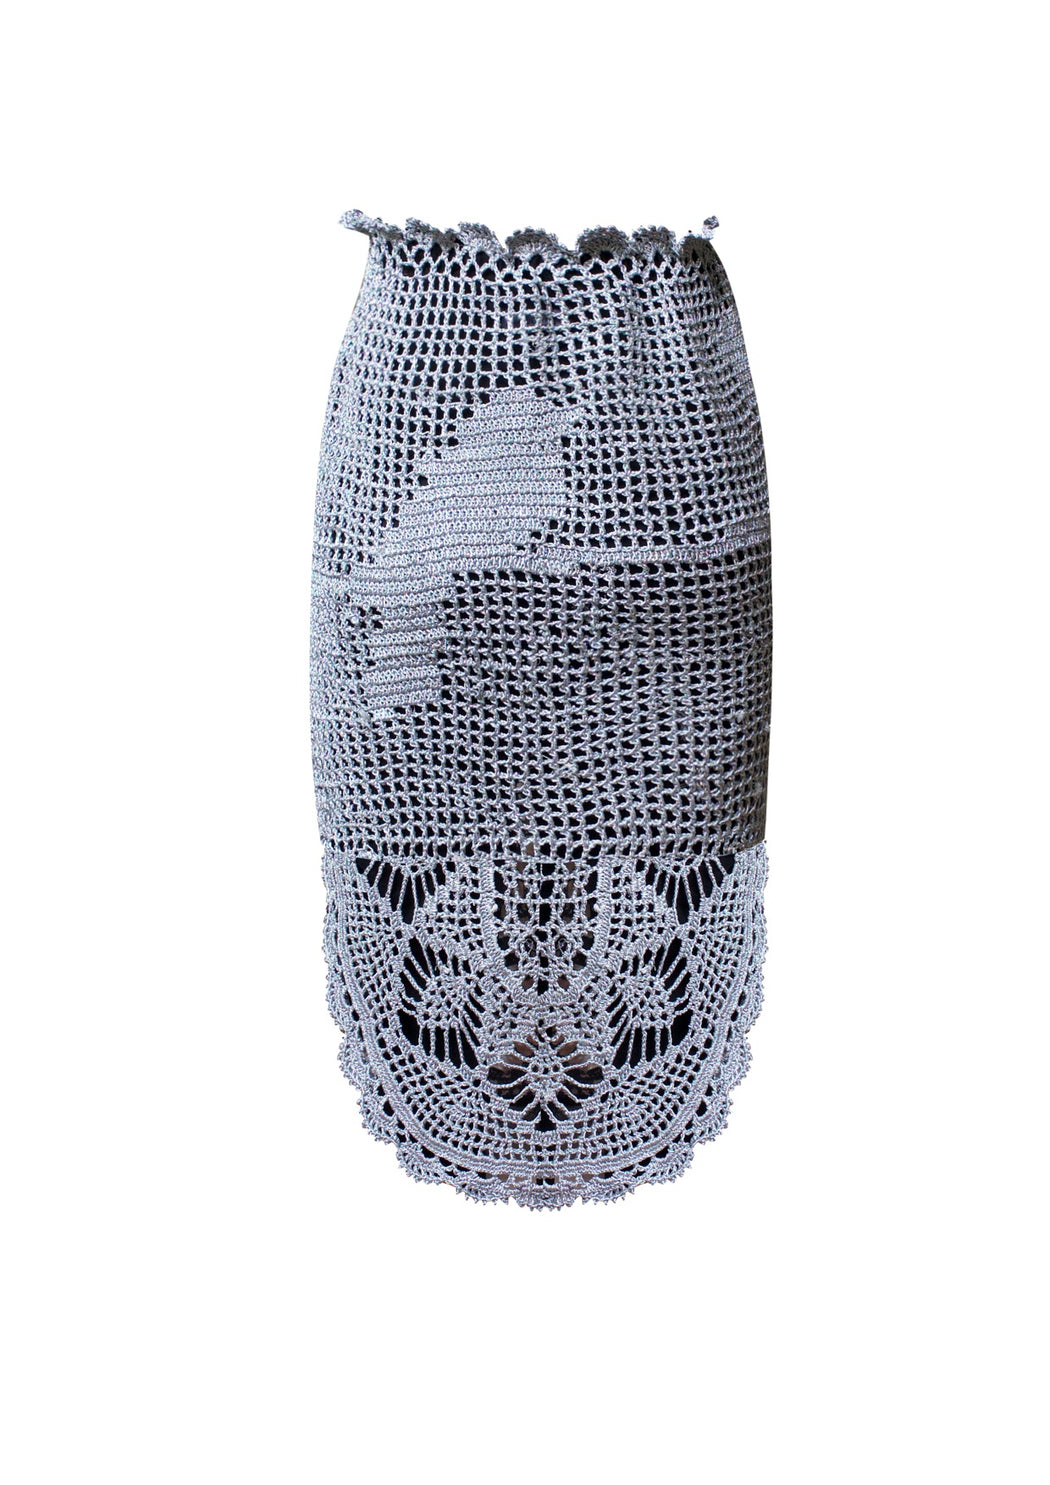 BIRDWALK CROCHET PENCIL SKIRT